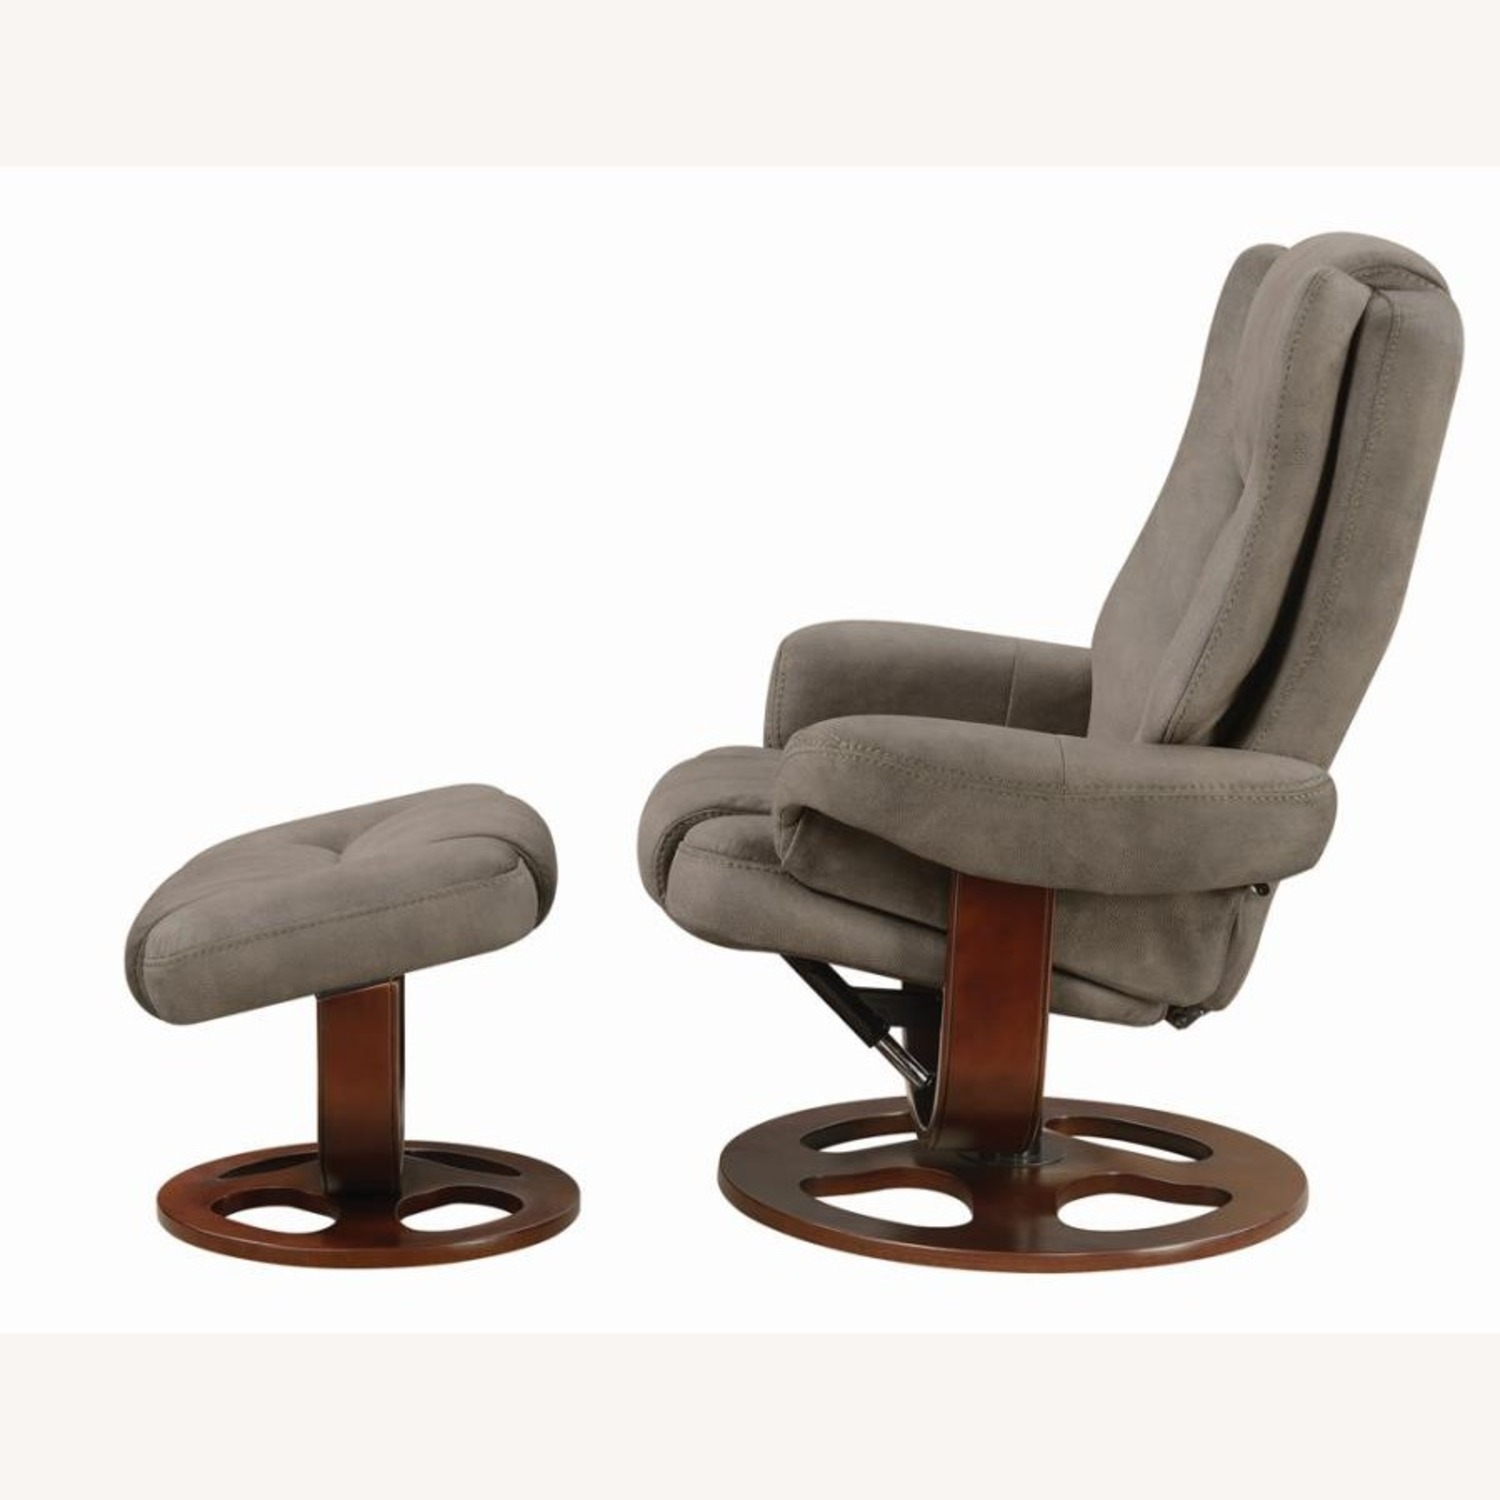 Recliner W/ Ottoman In 2-Tone Grey Faux Suede - image-2